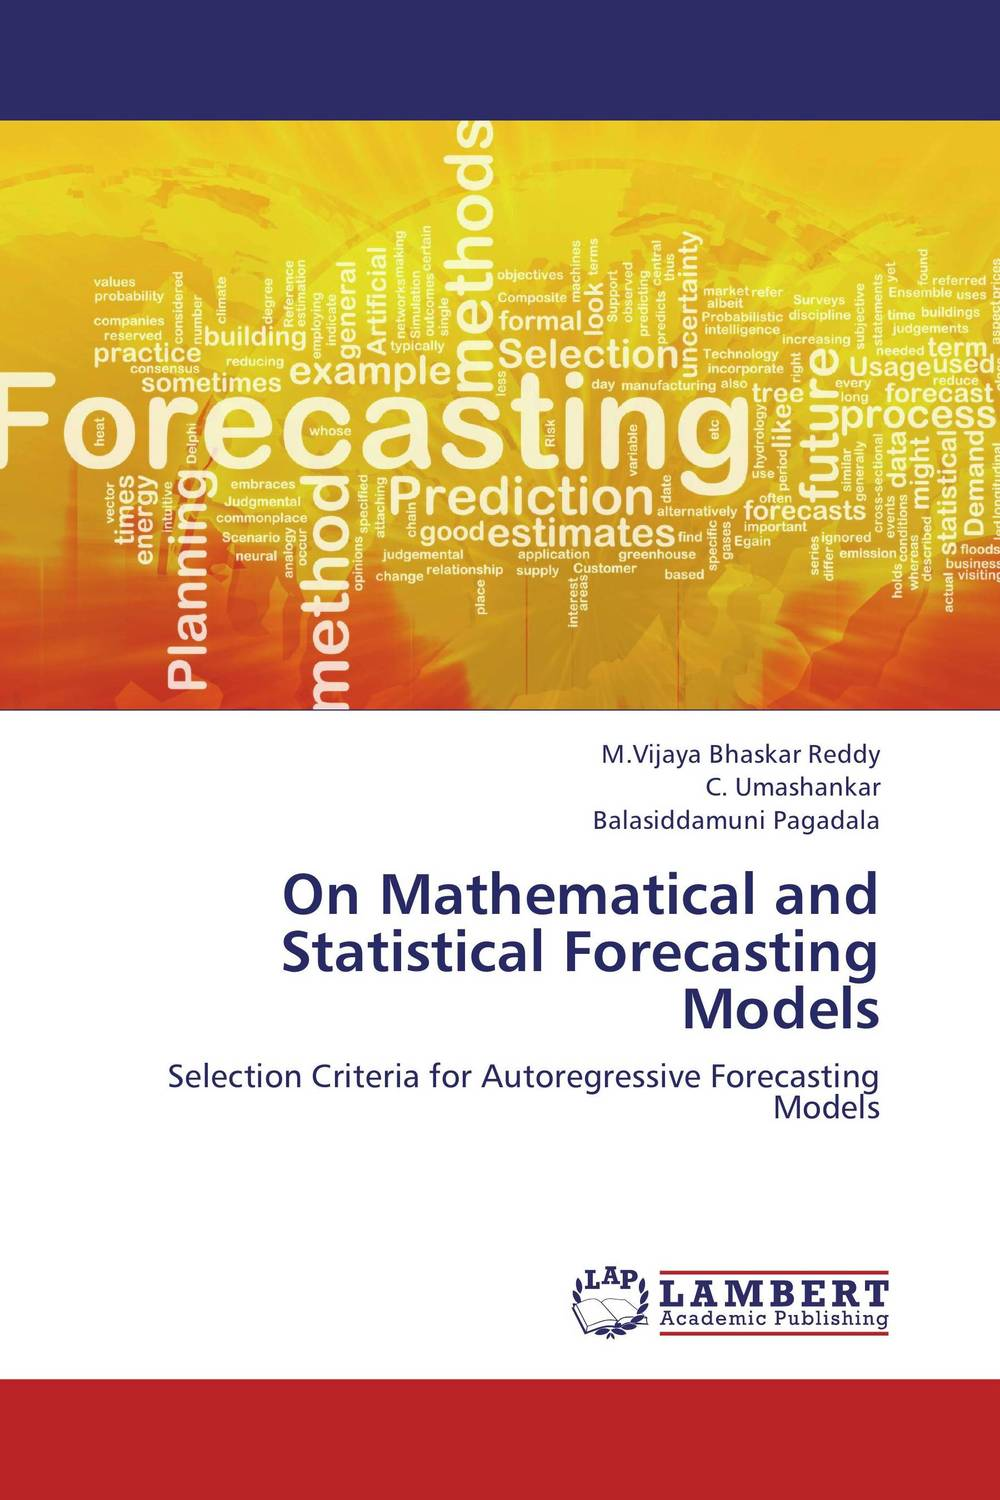 On Mathematical and Statistical Forecasting Models